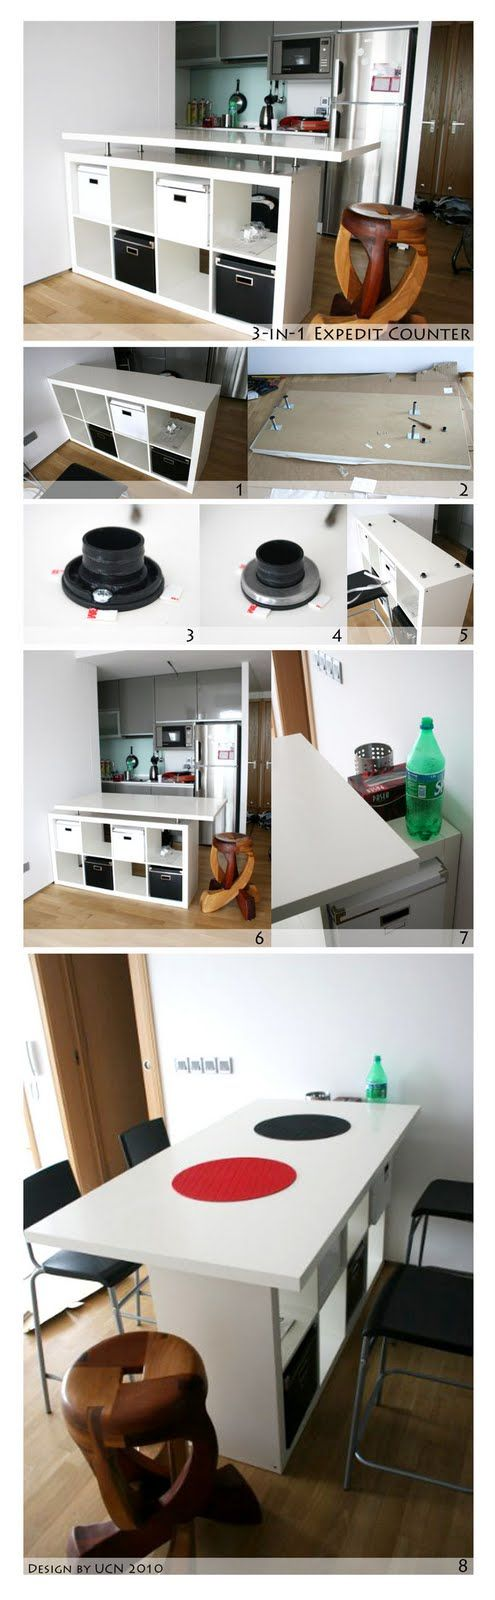 DIY kitchen island from ikea bookcase